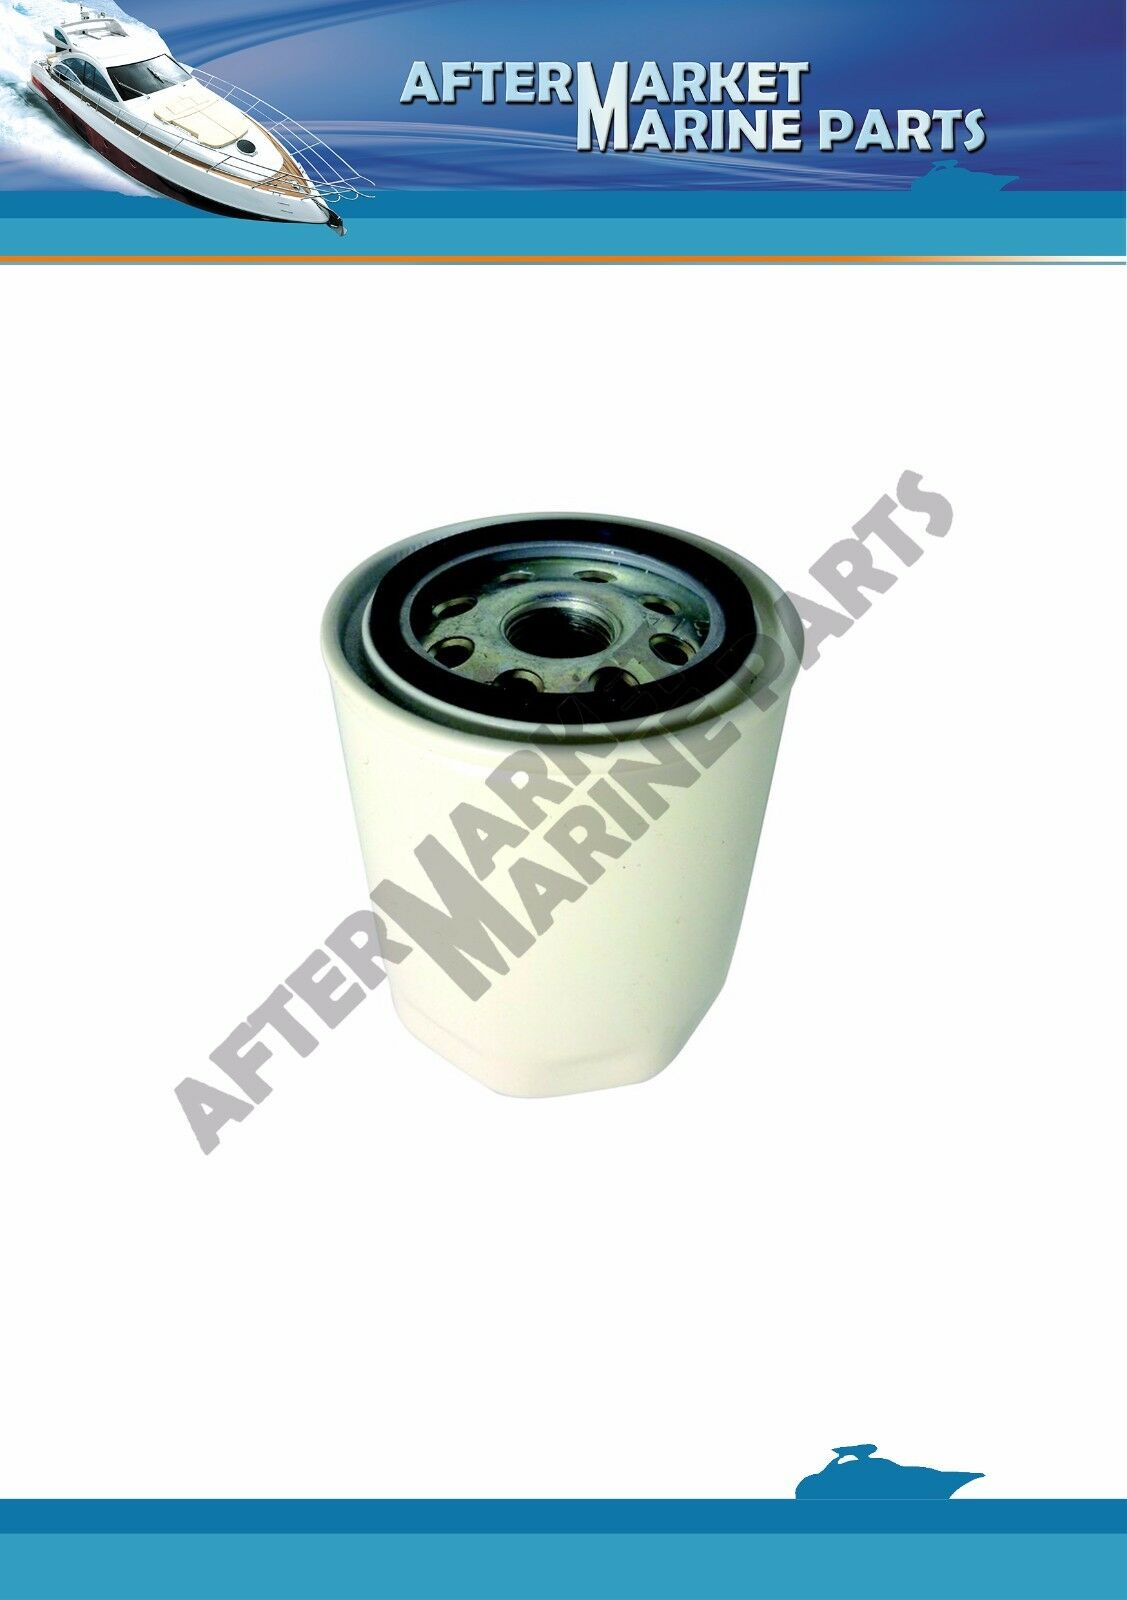 Volvo Penta Md2010 Md2020 Md2030 Md2040 D1 13 Fuel Filter Boat Location 1 Of 1free Shipping